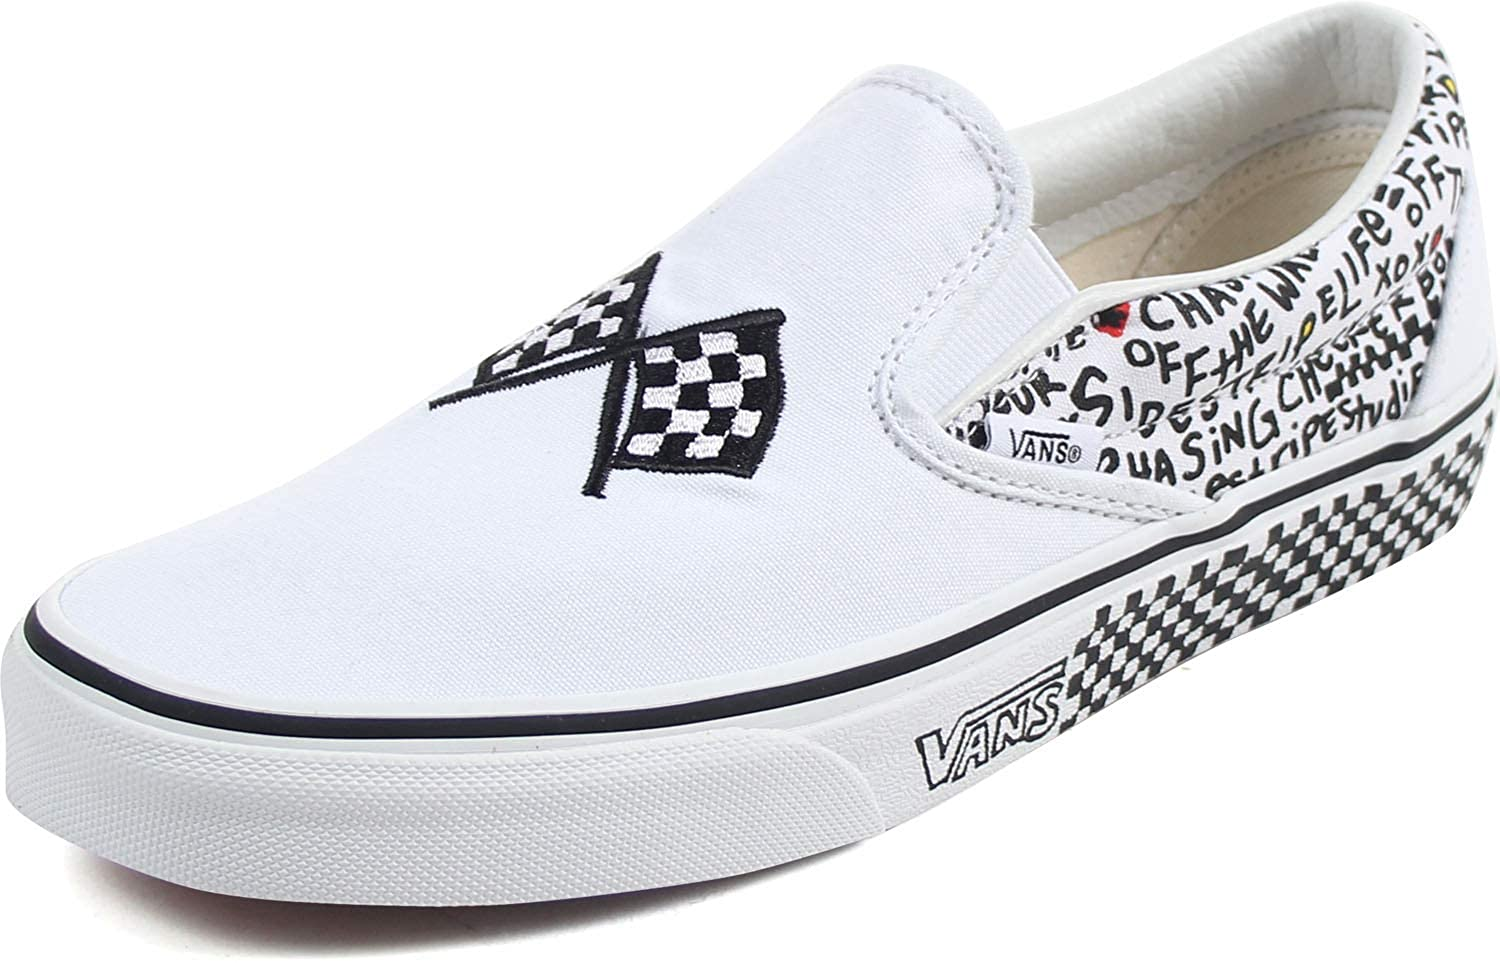 Vans AUTHENTIC, AUTHENTIC, AUTHENTIC, Unisex-Erwachsene Turnschuhe B07H1MF94D  da512a